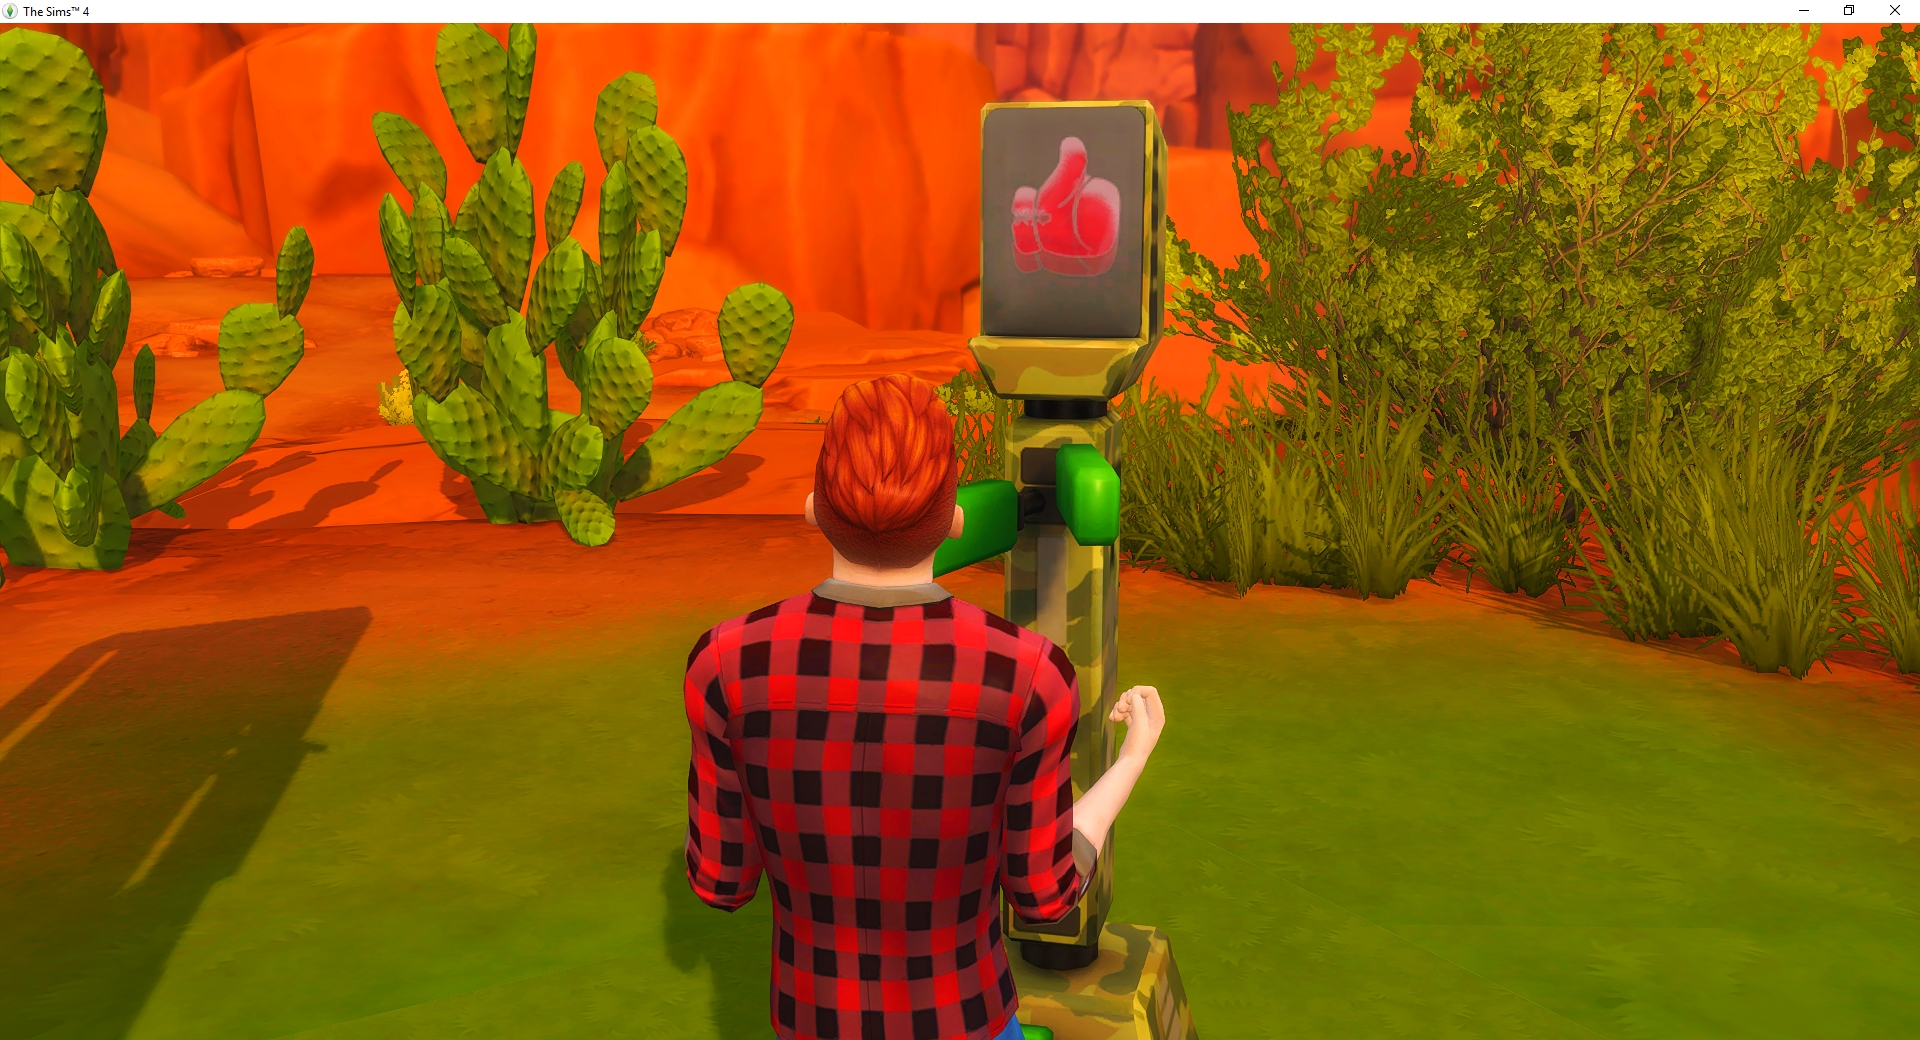 2019-06-30 08_08_24-The Sims™ 4